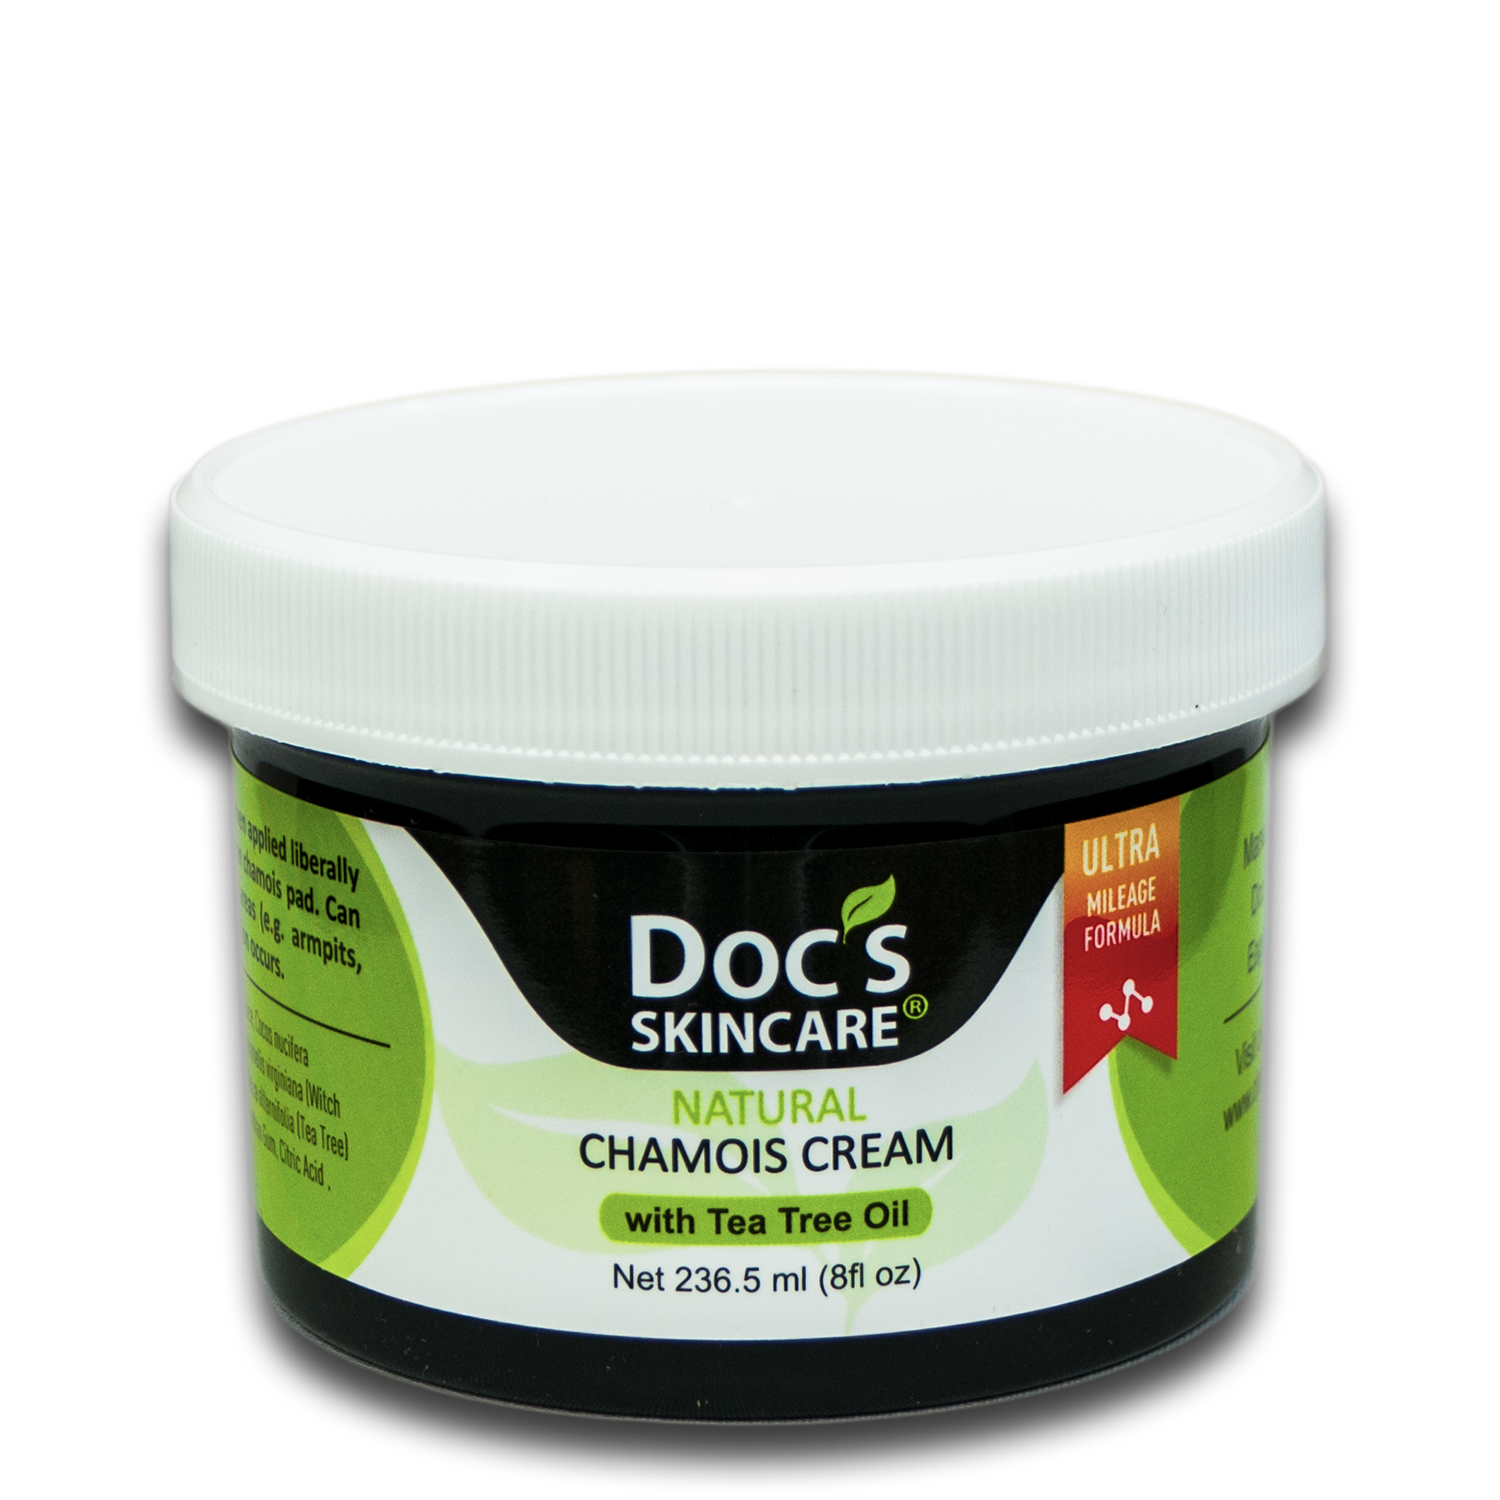 Doc's Natural Chamois Cream